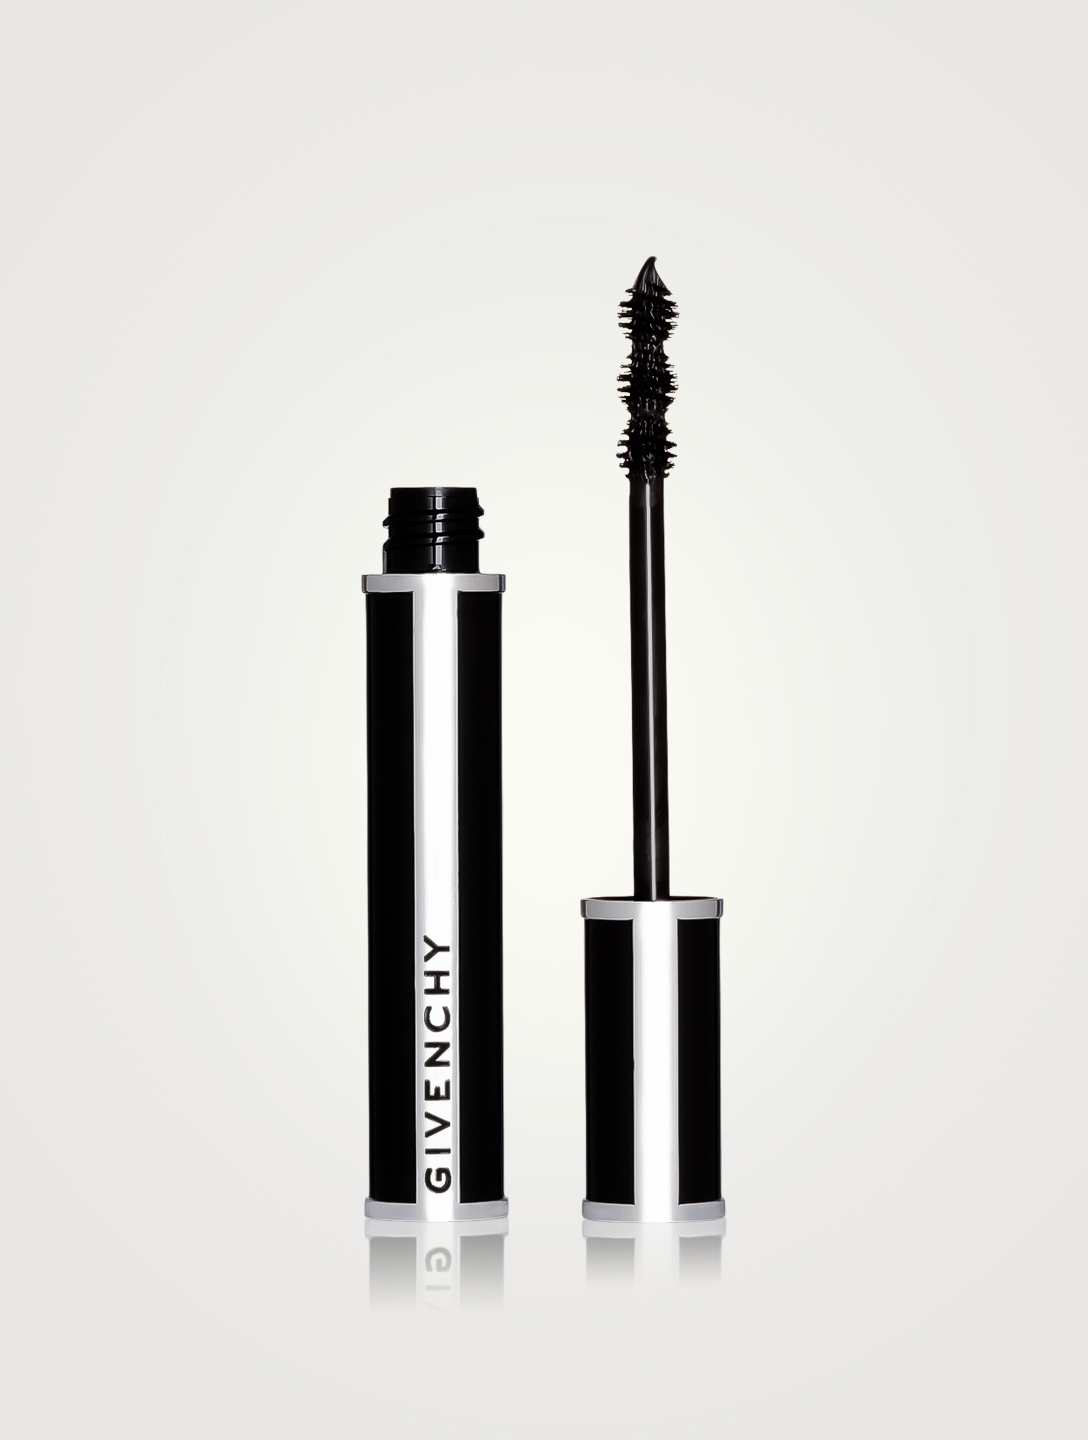 GIVENCHY Noir Couture 4 In 1 Mascara Beauty Black